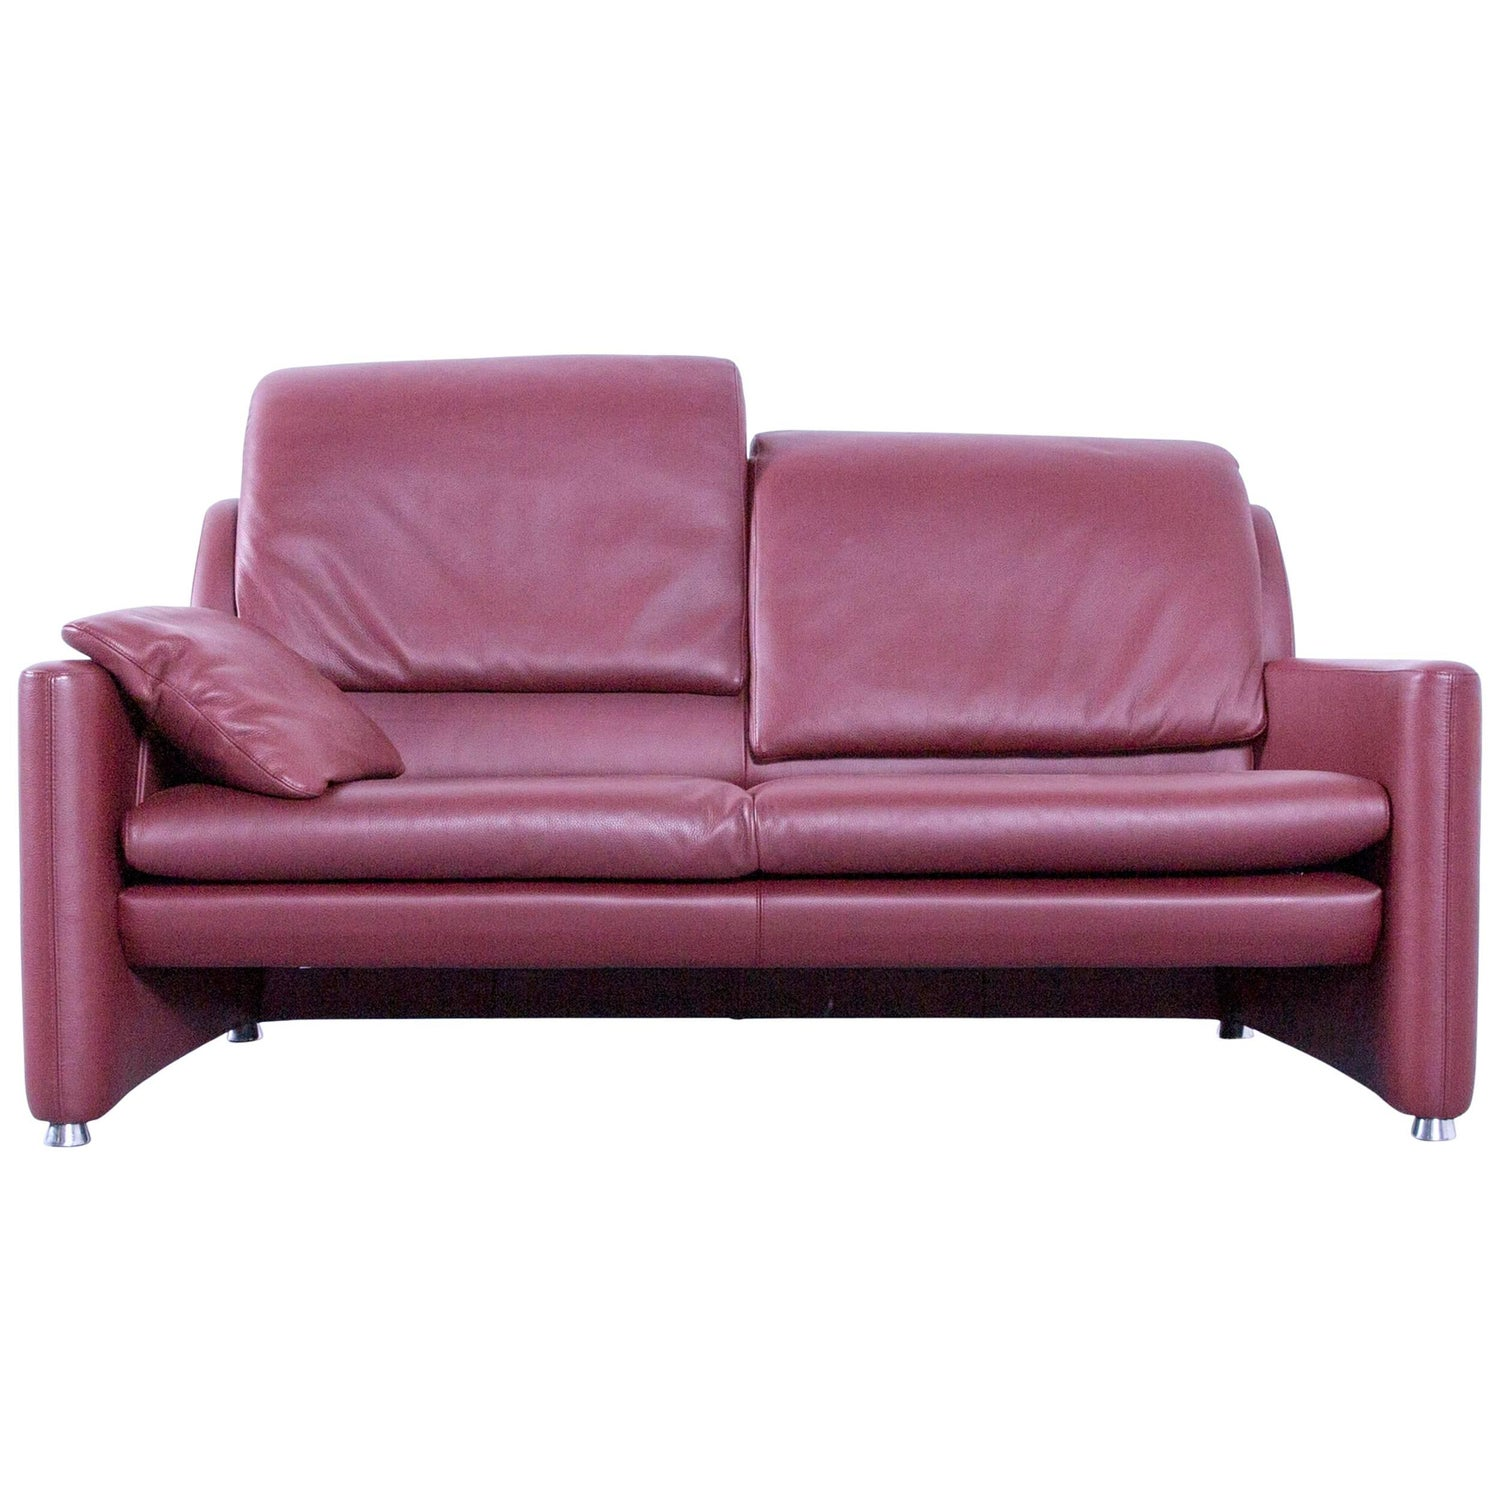 Leolux Fidamigo Designer Leather Sofa Red Two Seat Function Couch